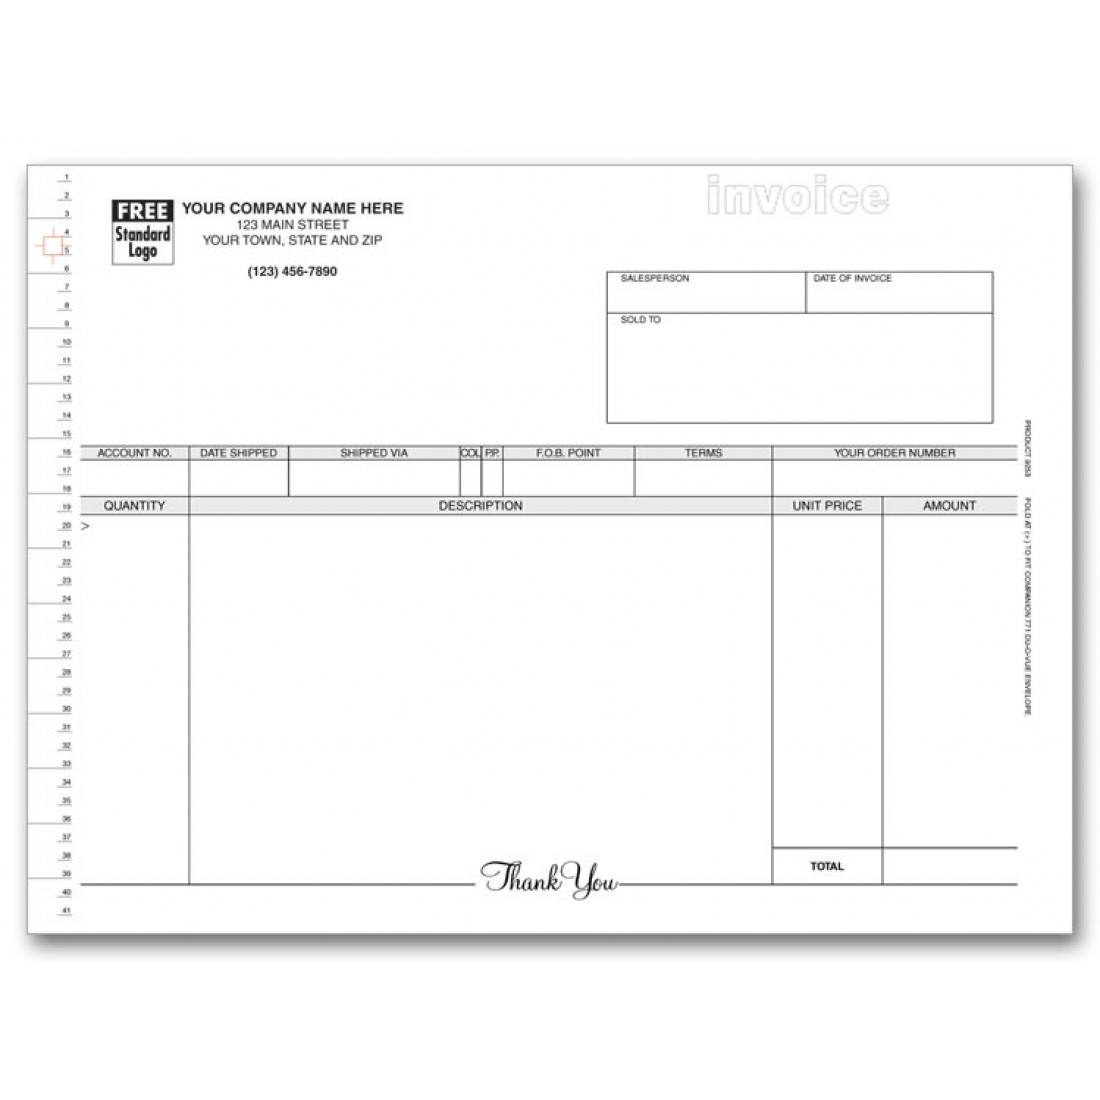 Compact Continuous Invoice with Mailing Label